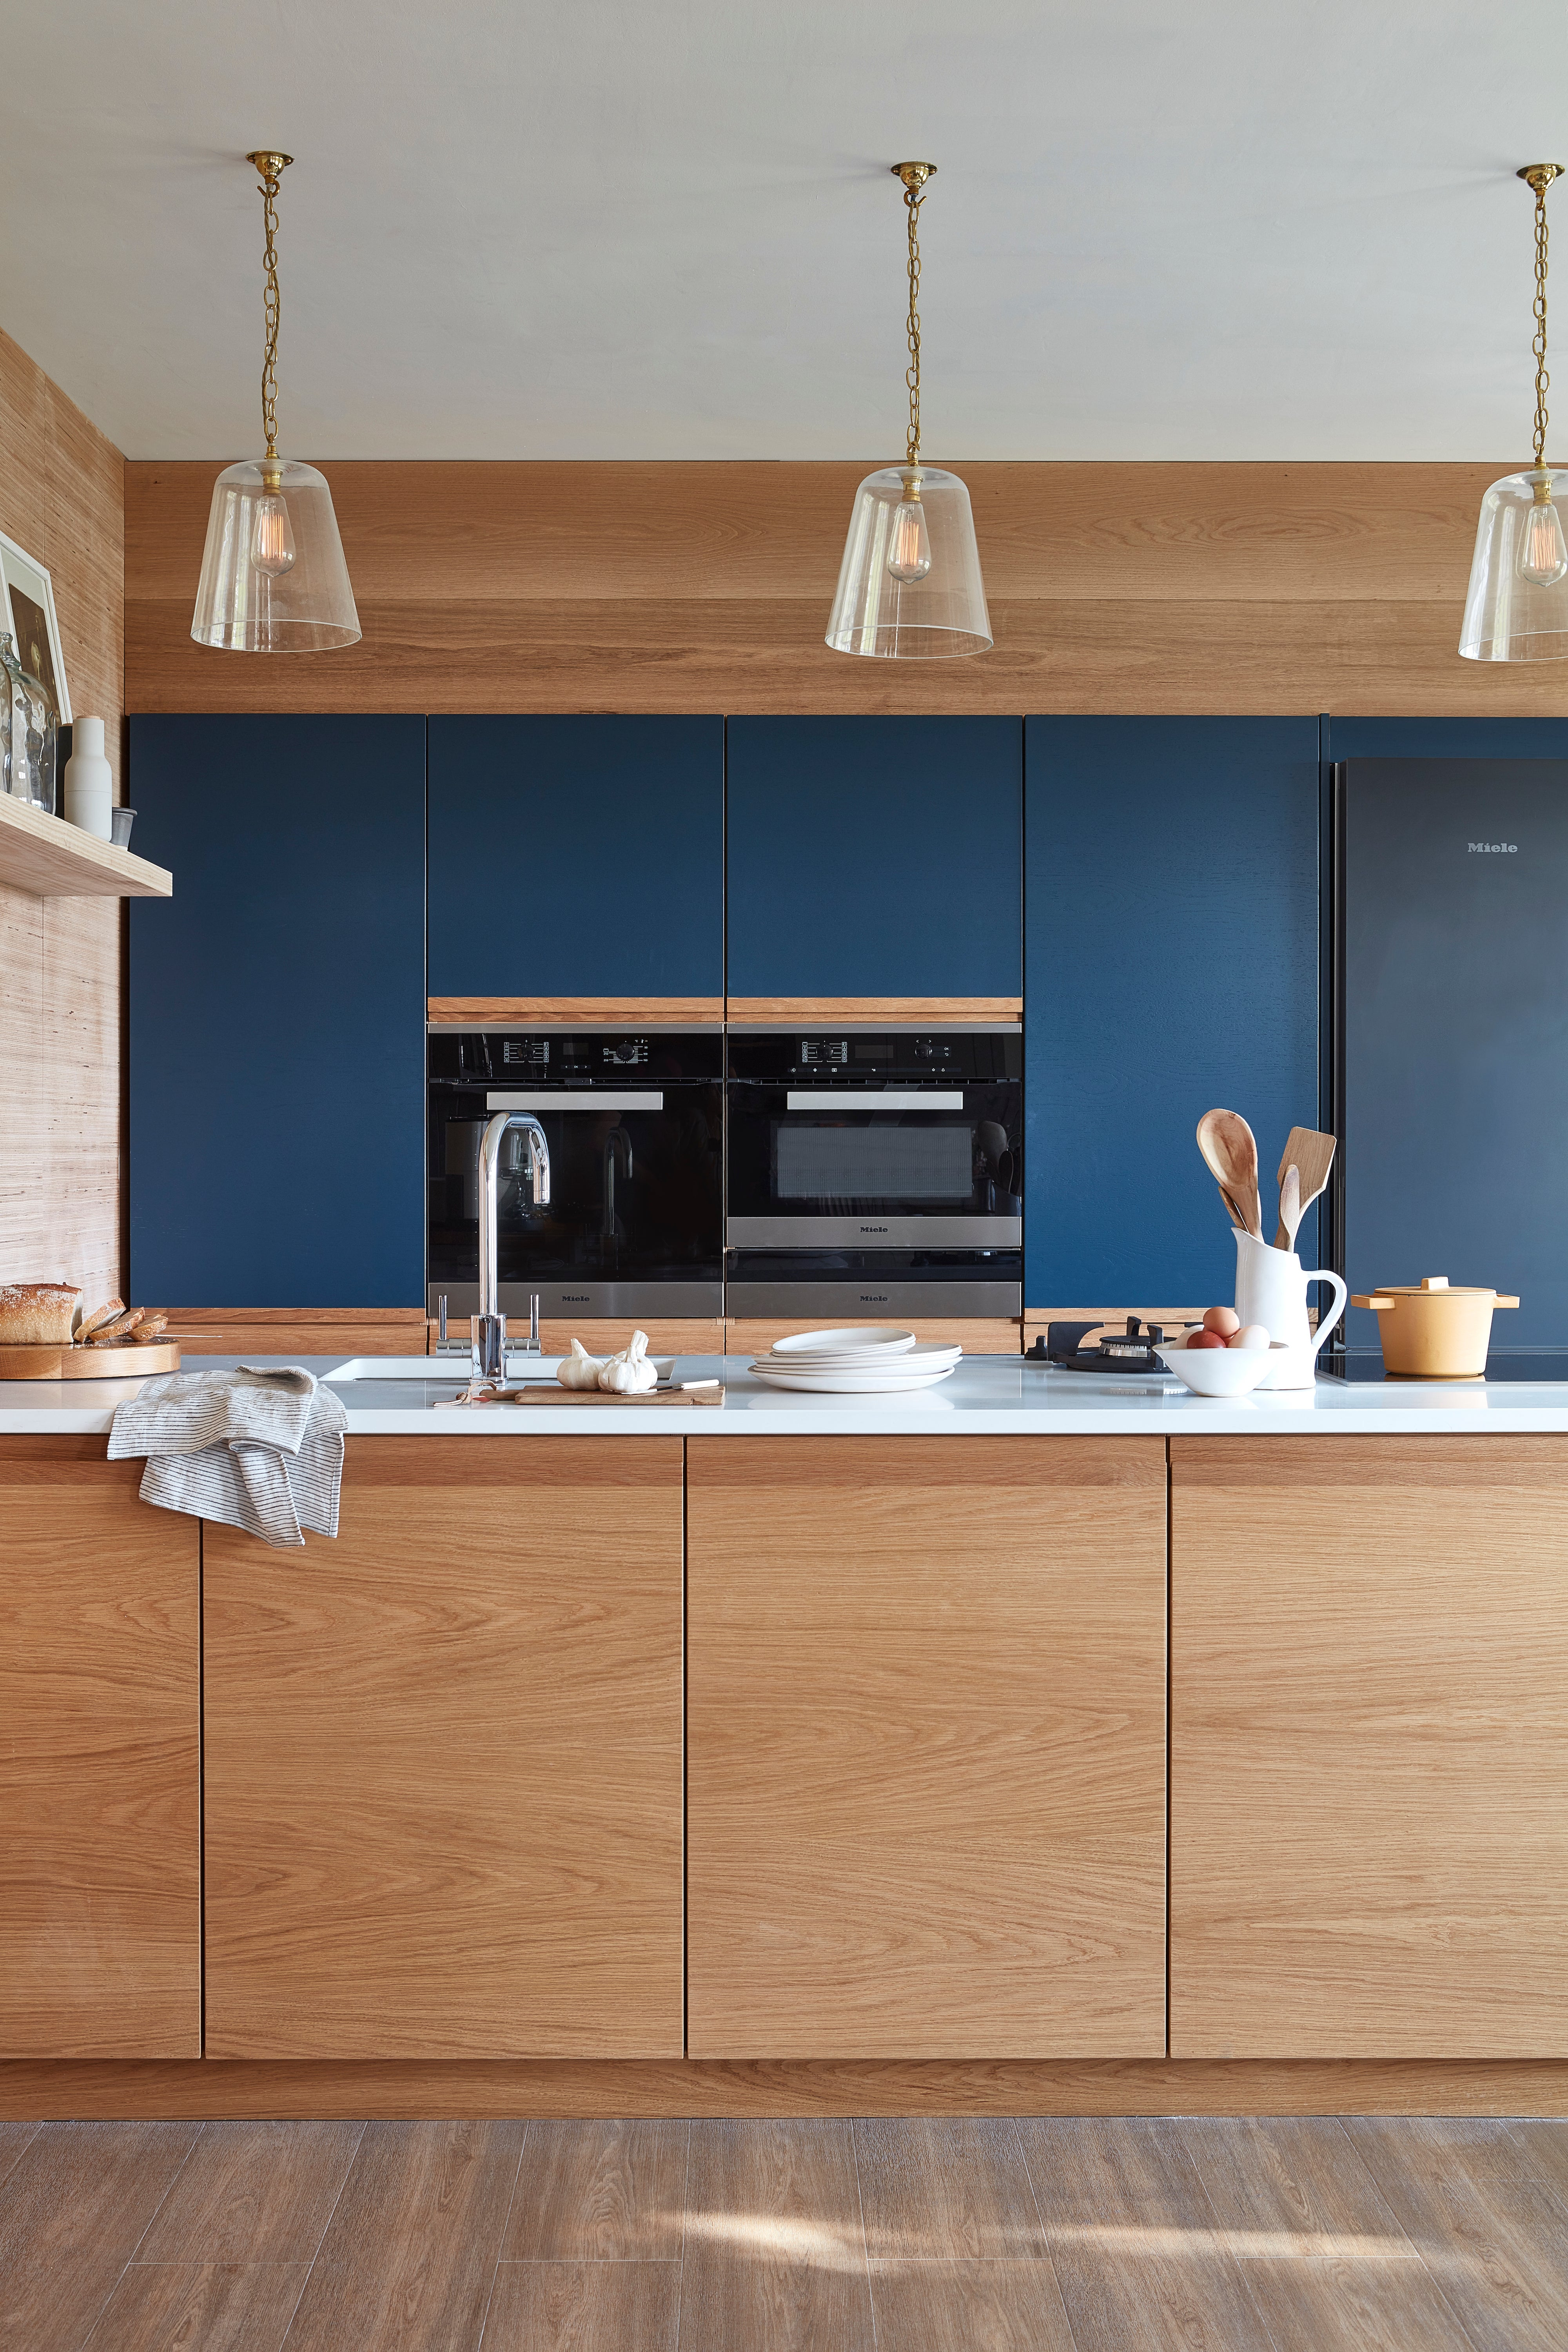 This No Hardware Trend Is The Kitchen Idea That Might Save You Money